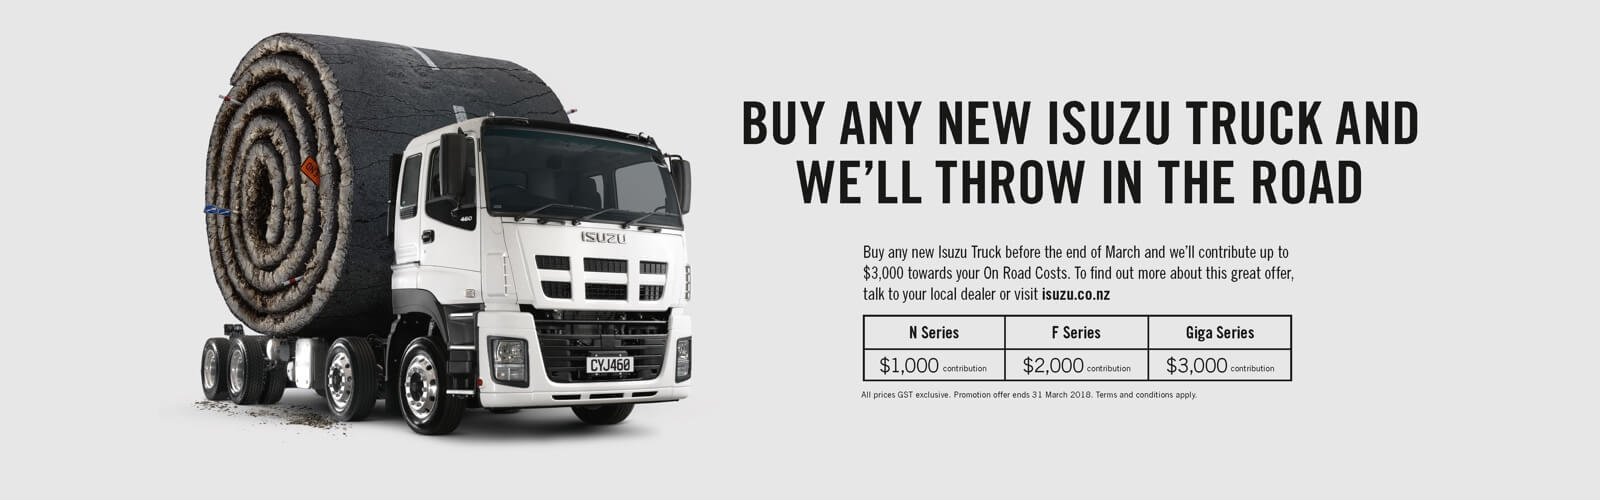 Buy Any New Isuzu and We'll Throw in the Road